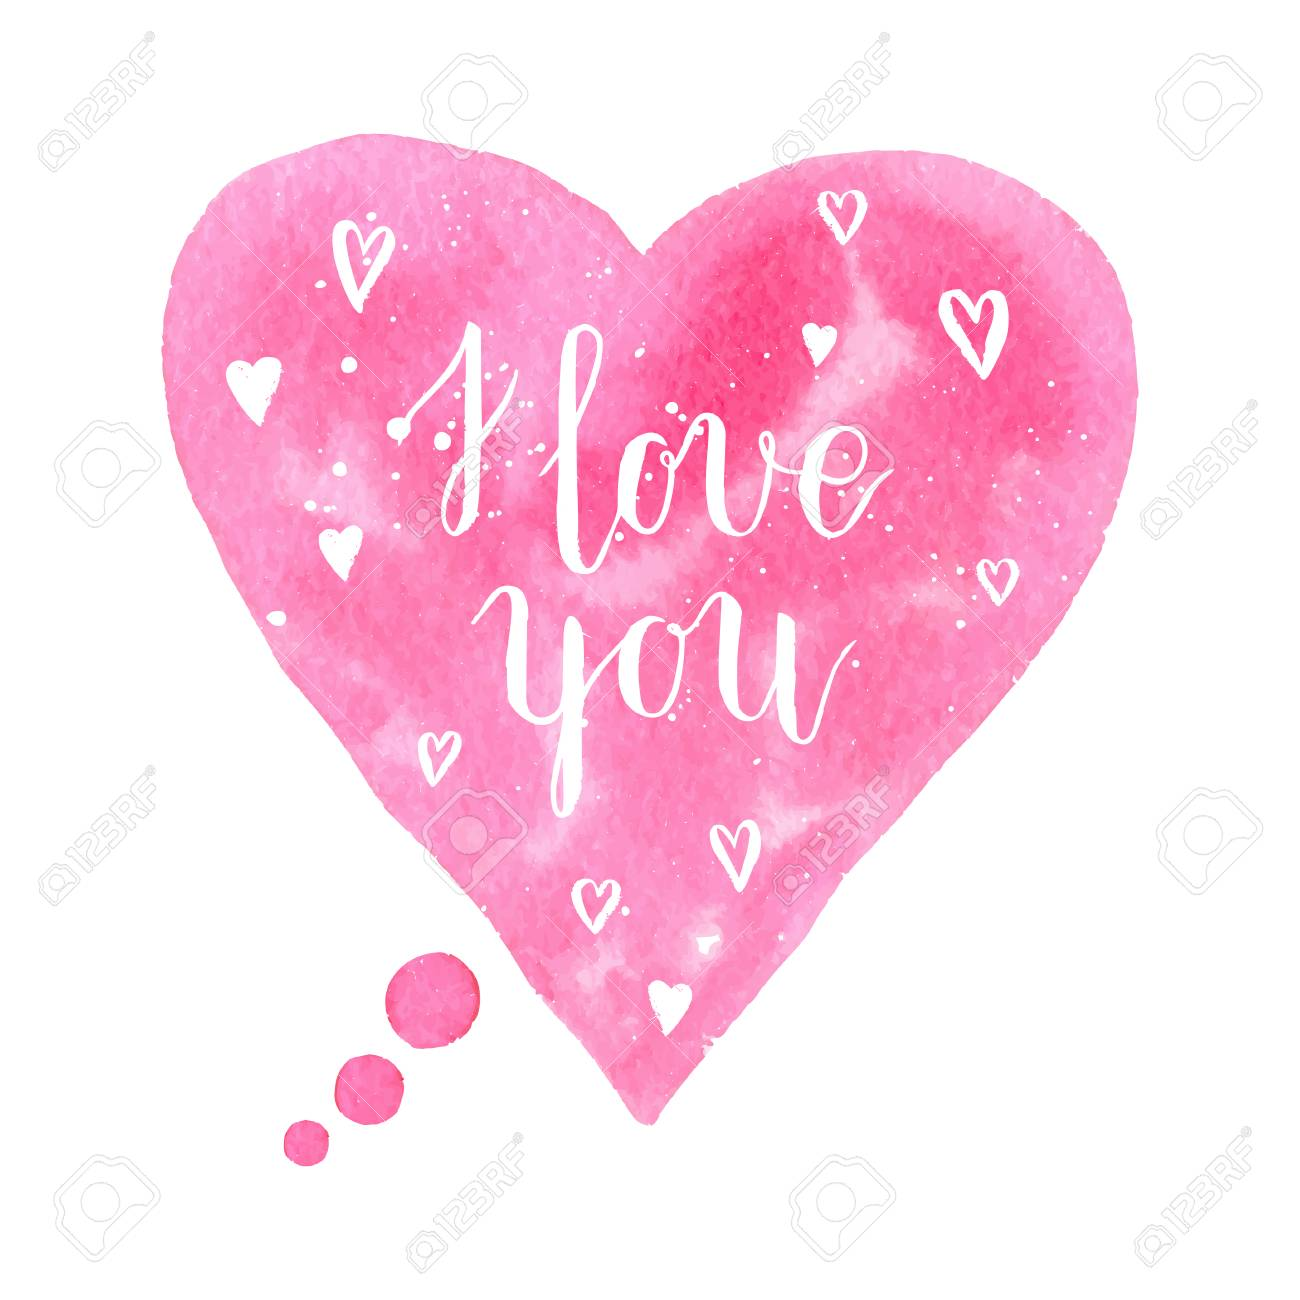 i love you greeting card poster with pink watercolor speech bubble hand drawn heart